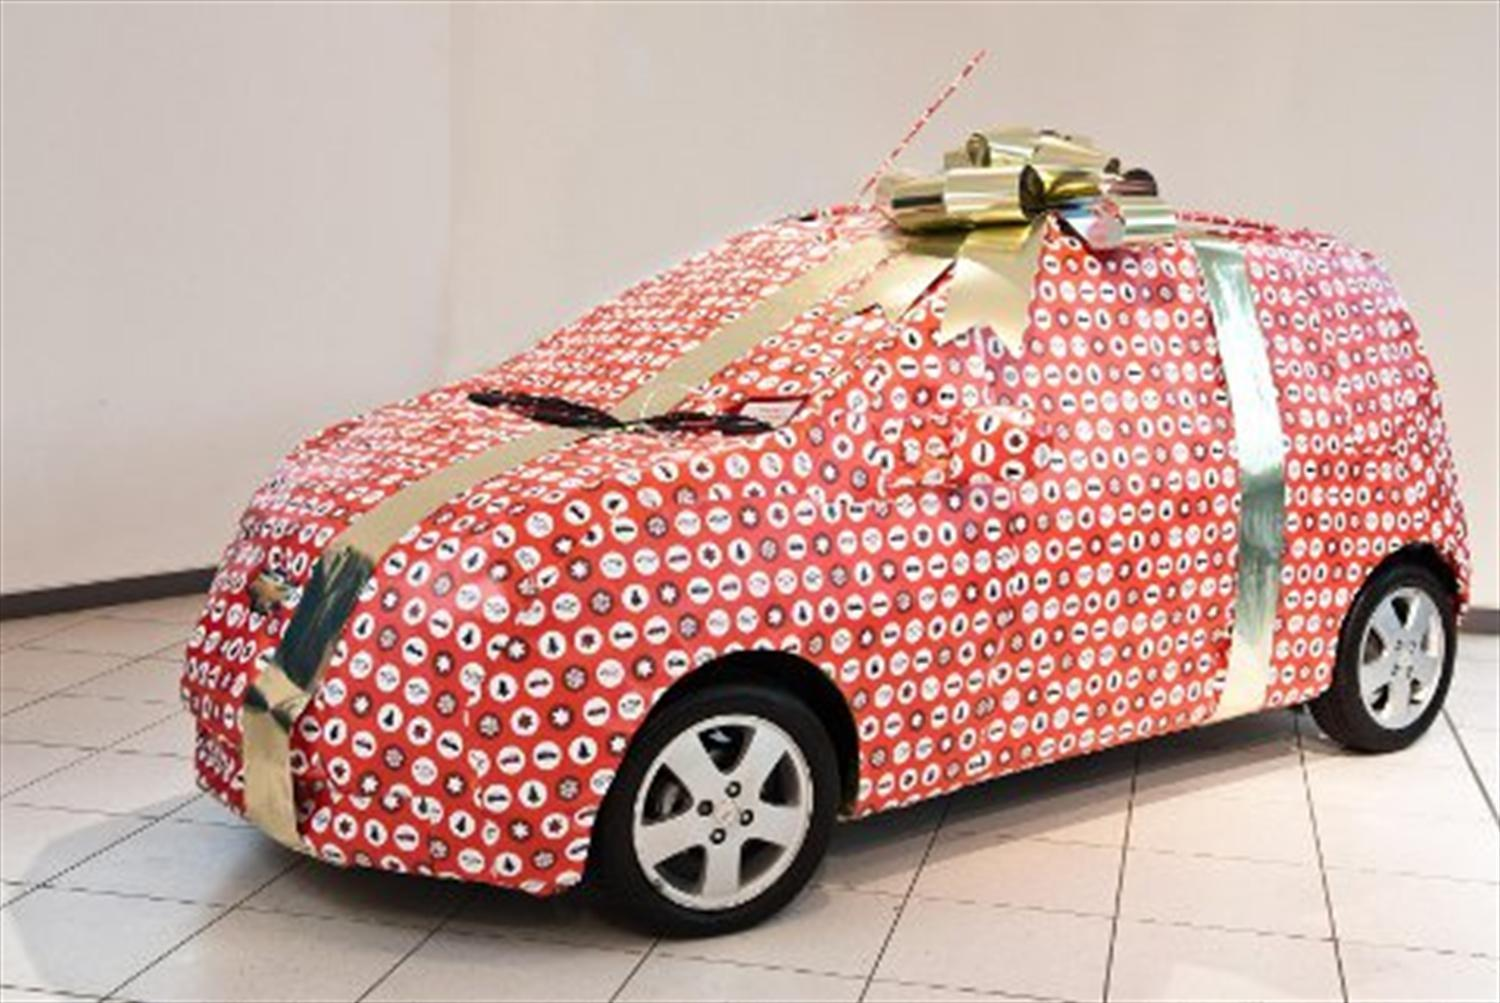 Chevy Announces Spark Wrapping Service